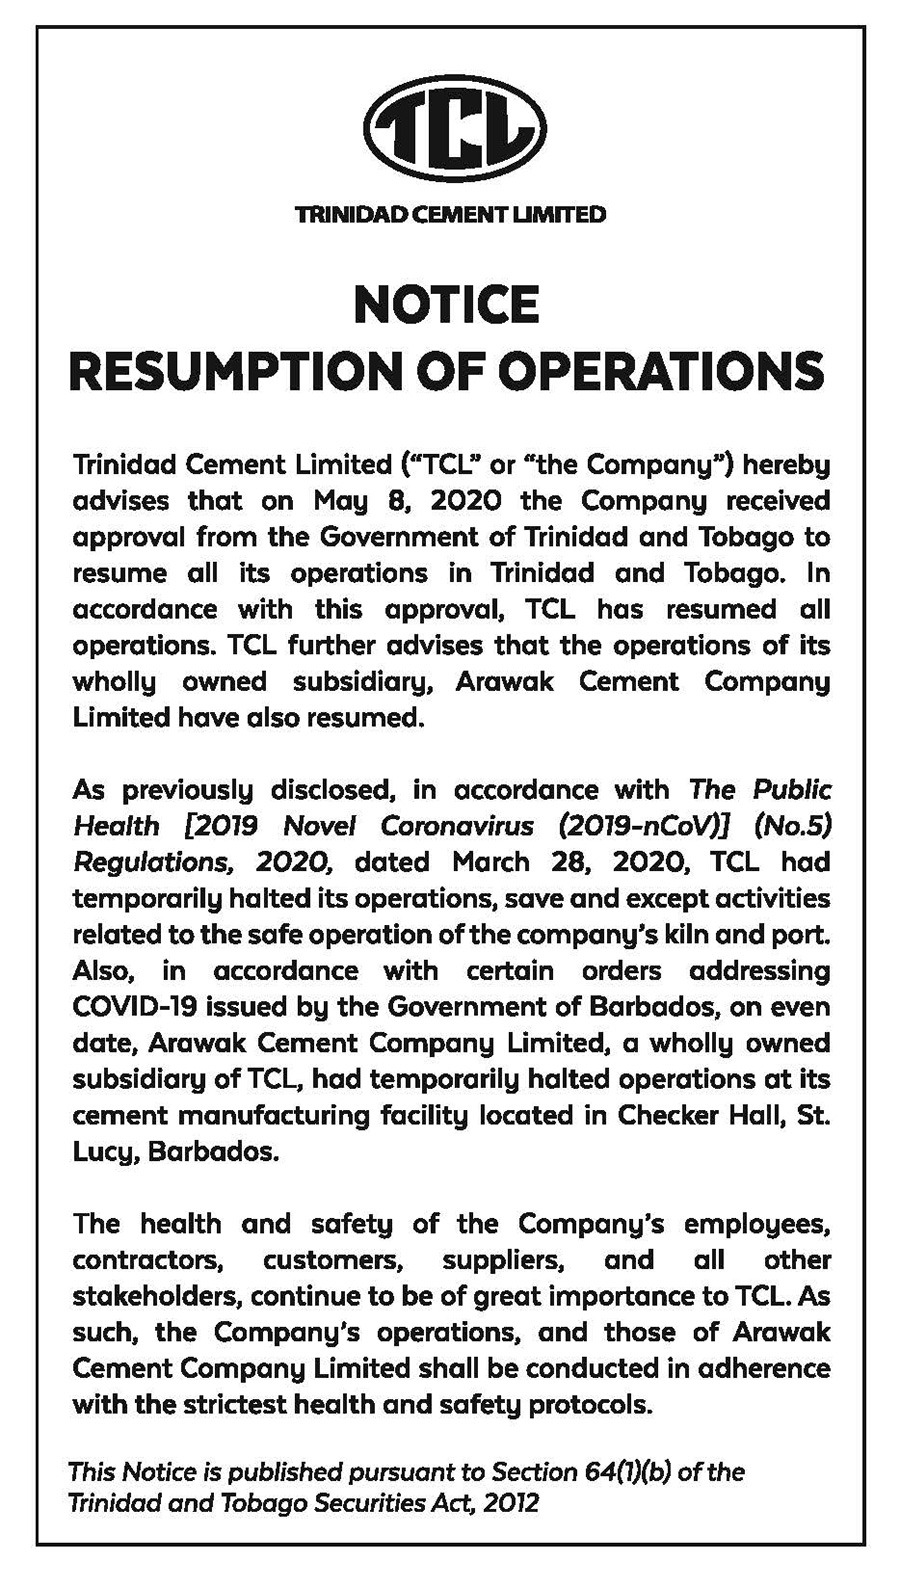 2020-TCL-NOTICE-AD-20X3----RESUMPTION-OF-OPERATIONS-faw